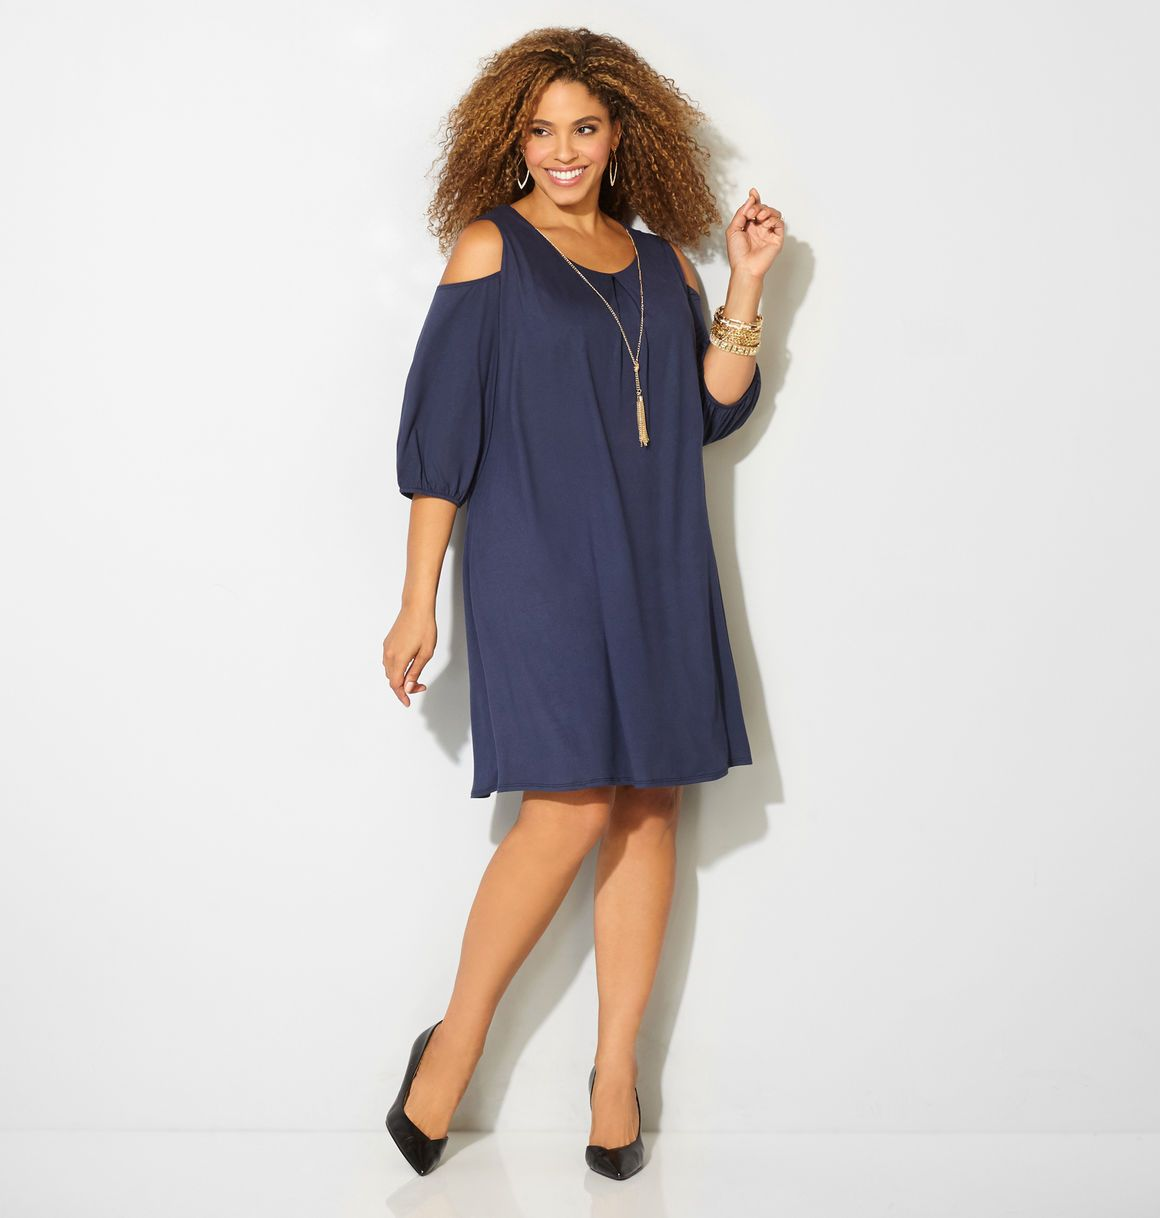 853327c2cdd Shop new necklace dresses with shoulder show like our plus size Cold  Shoulder Tassel Necklace Dress available in sizes 14-32 online at avenue .com.